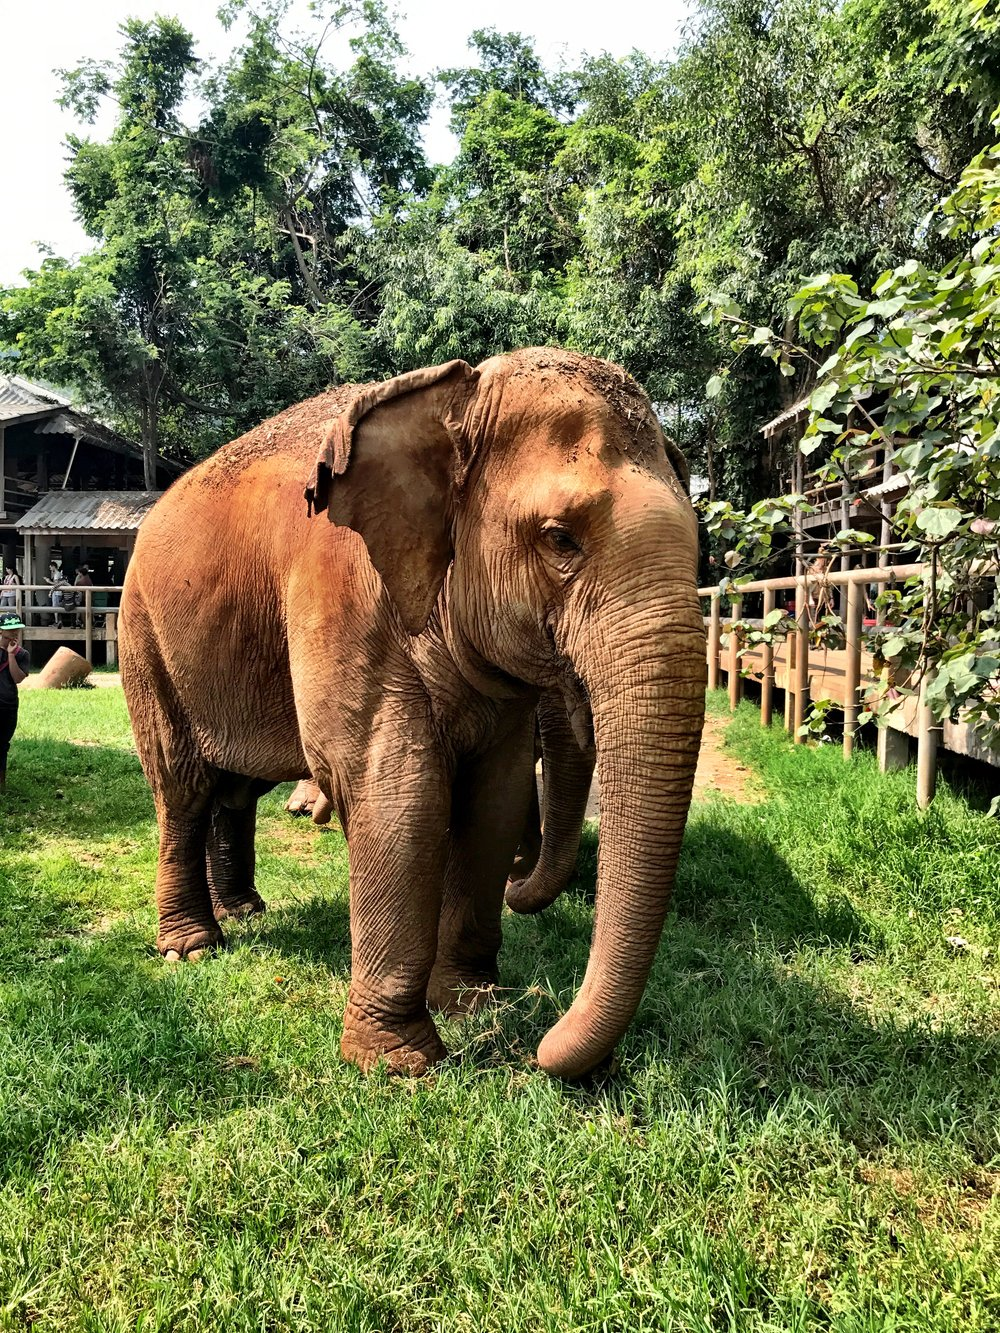 It's heartbreaking to think how much these elephants suffered before their idyllic life in the sanctuary